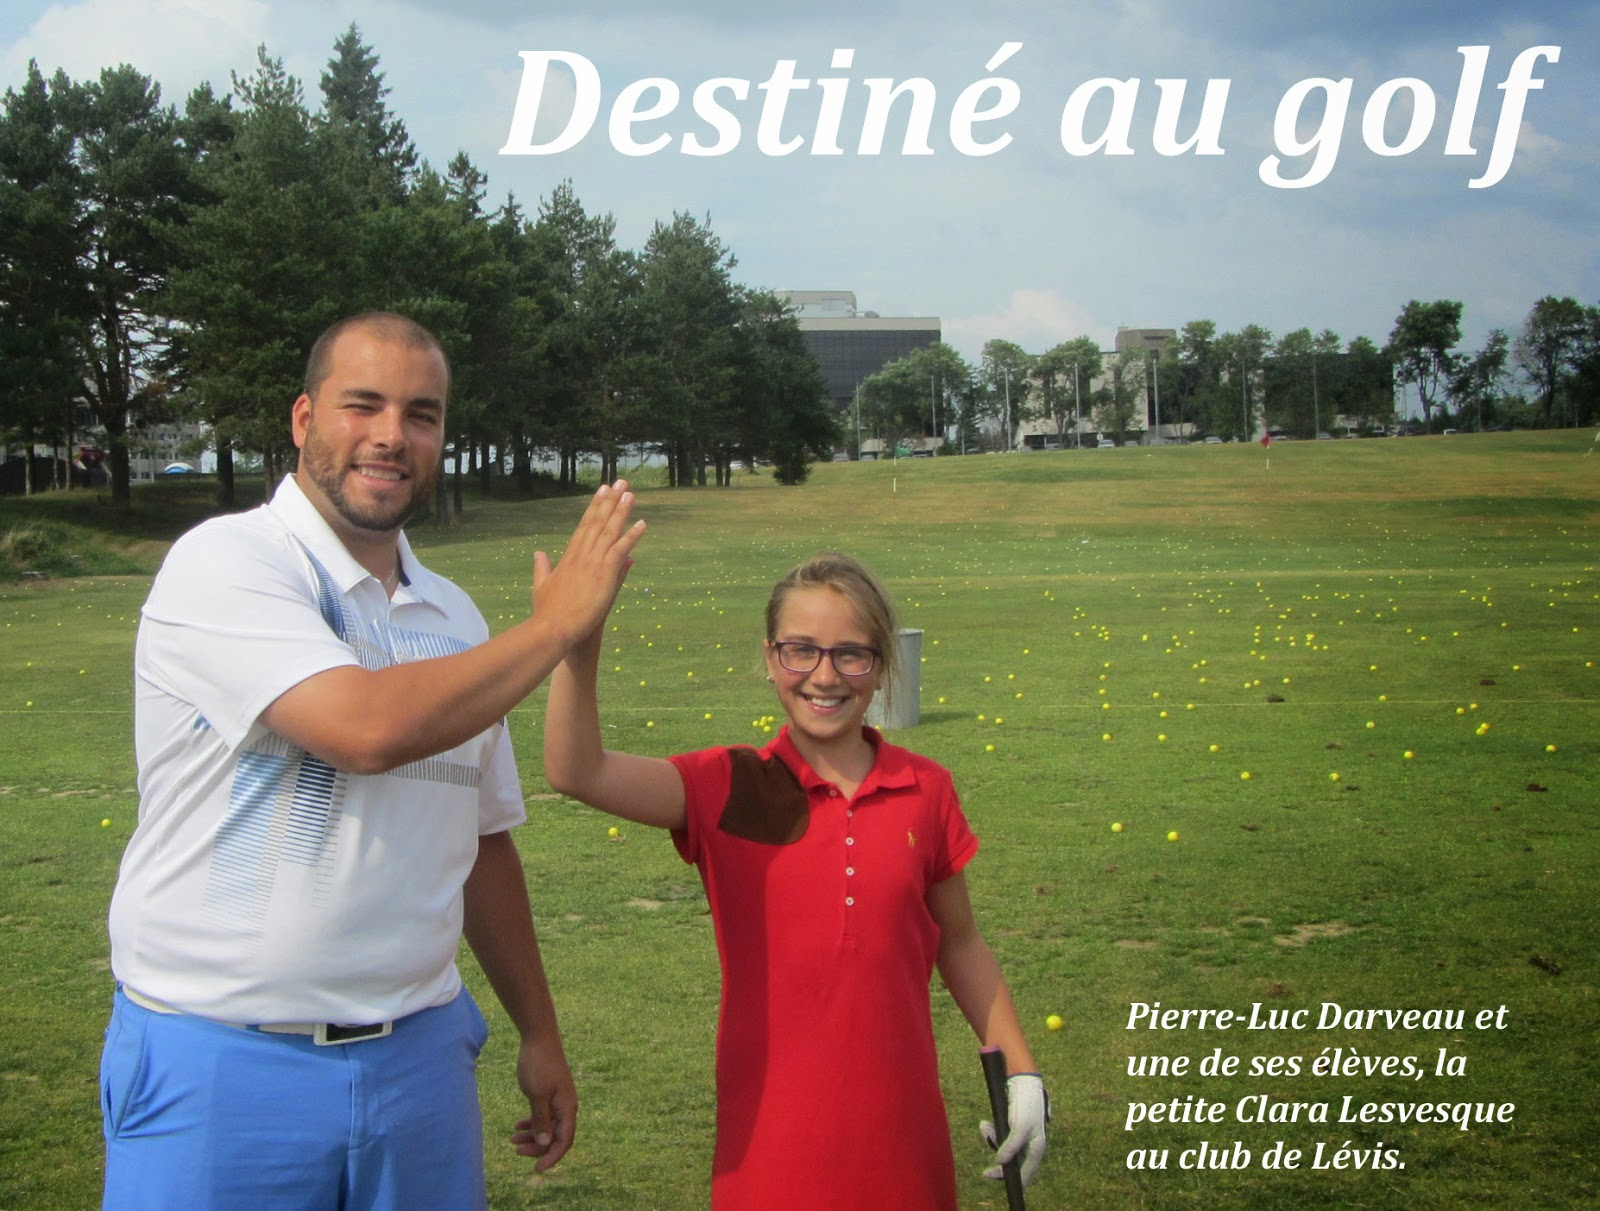 Pierre-Luc Darveau, destiné au golf